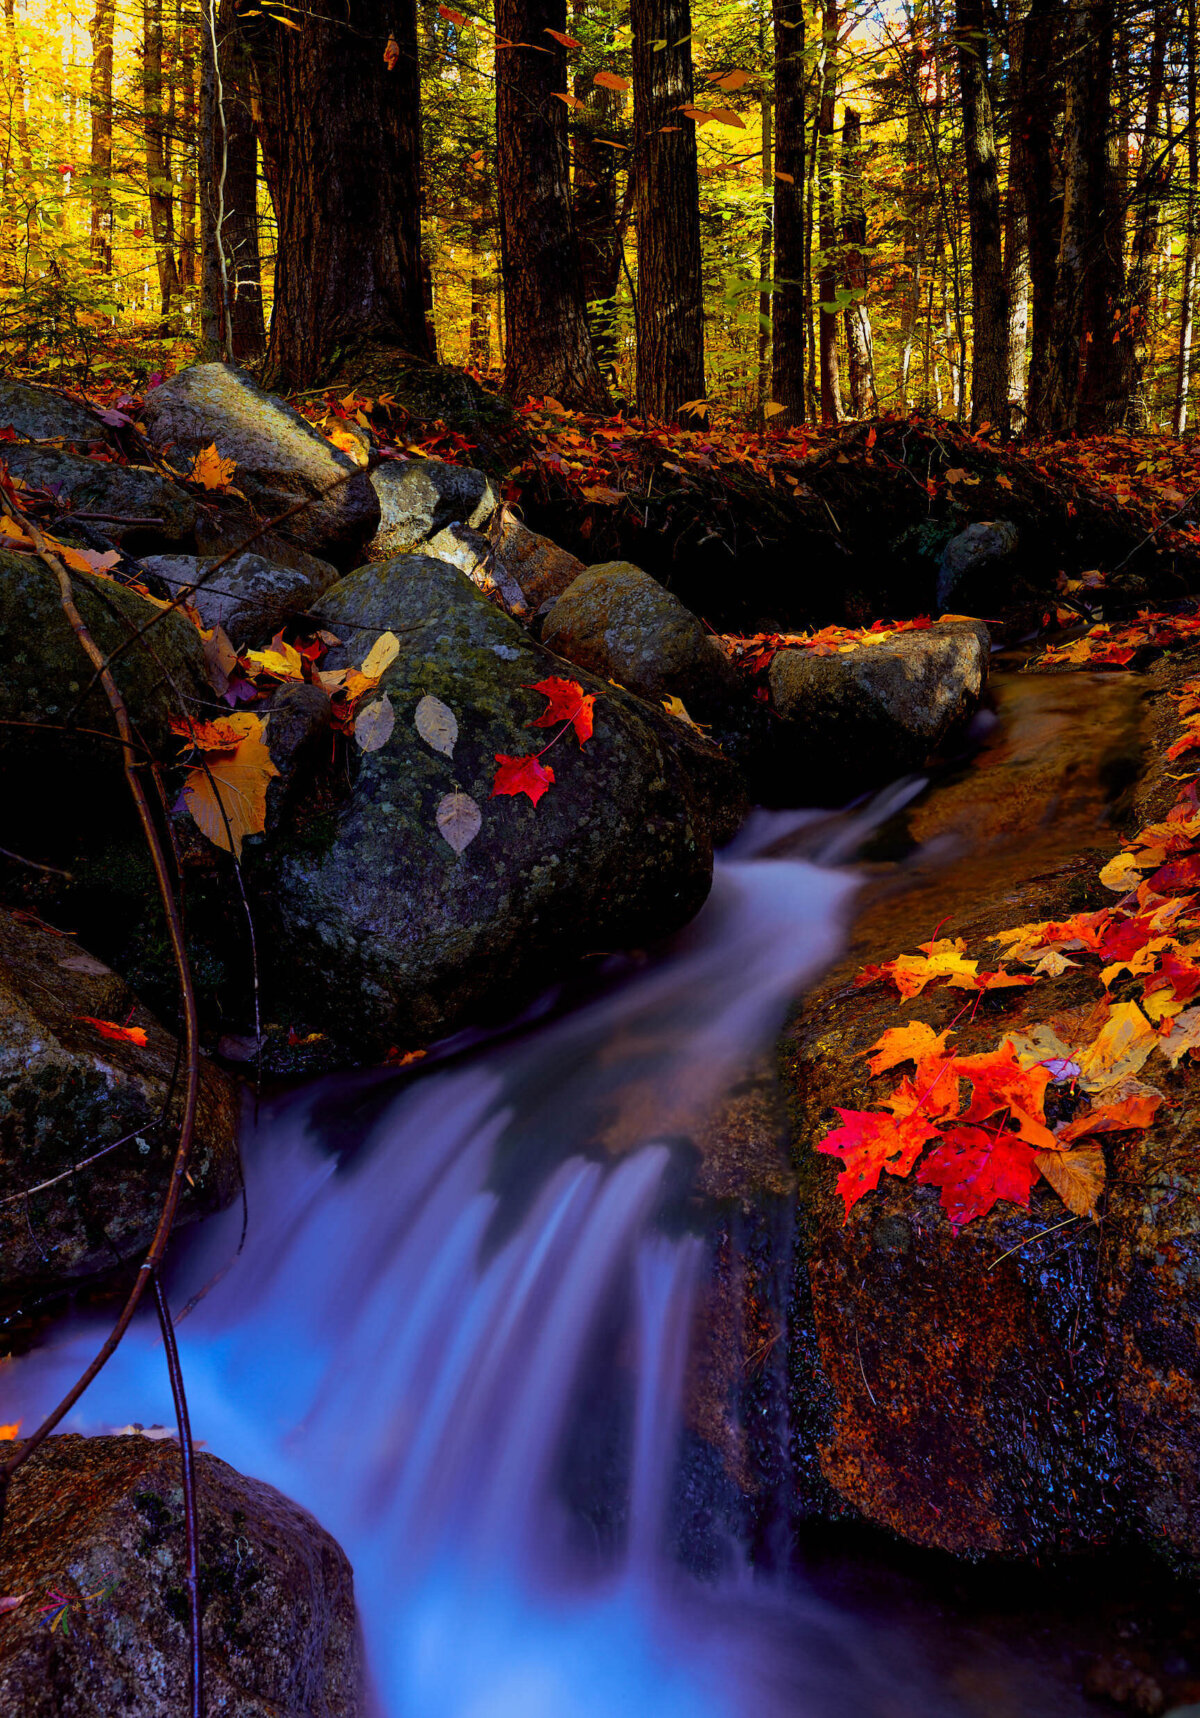 Autumn Woods Nature Trees Water Flow Canvas Pictures Wall Art Prints All Sizes